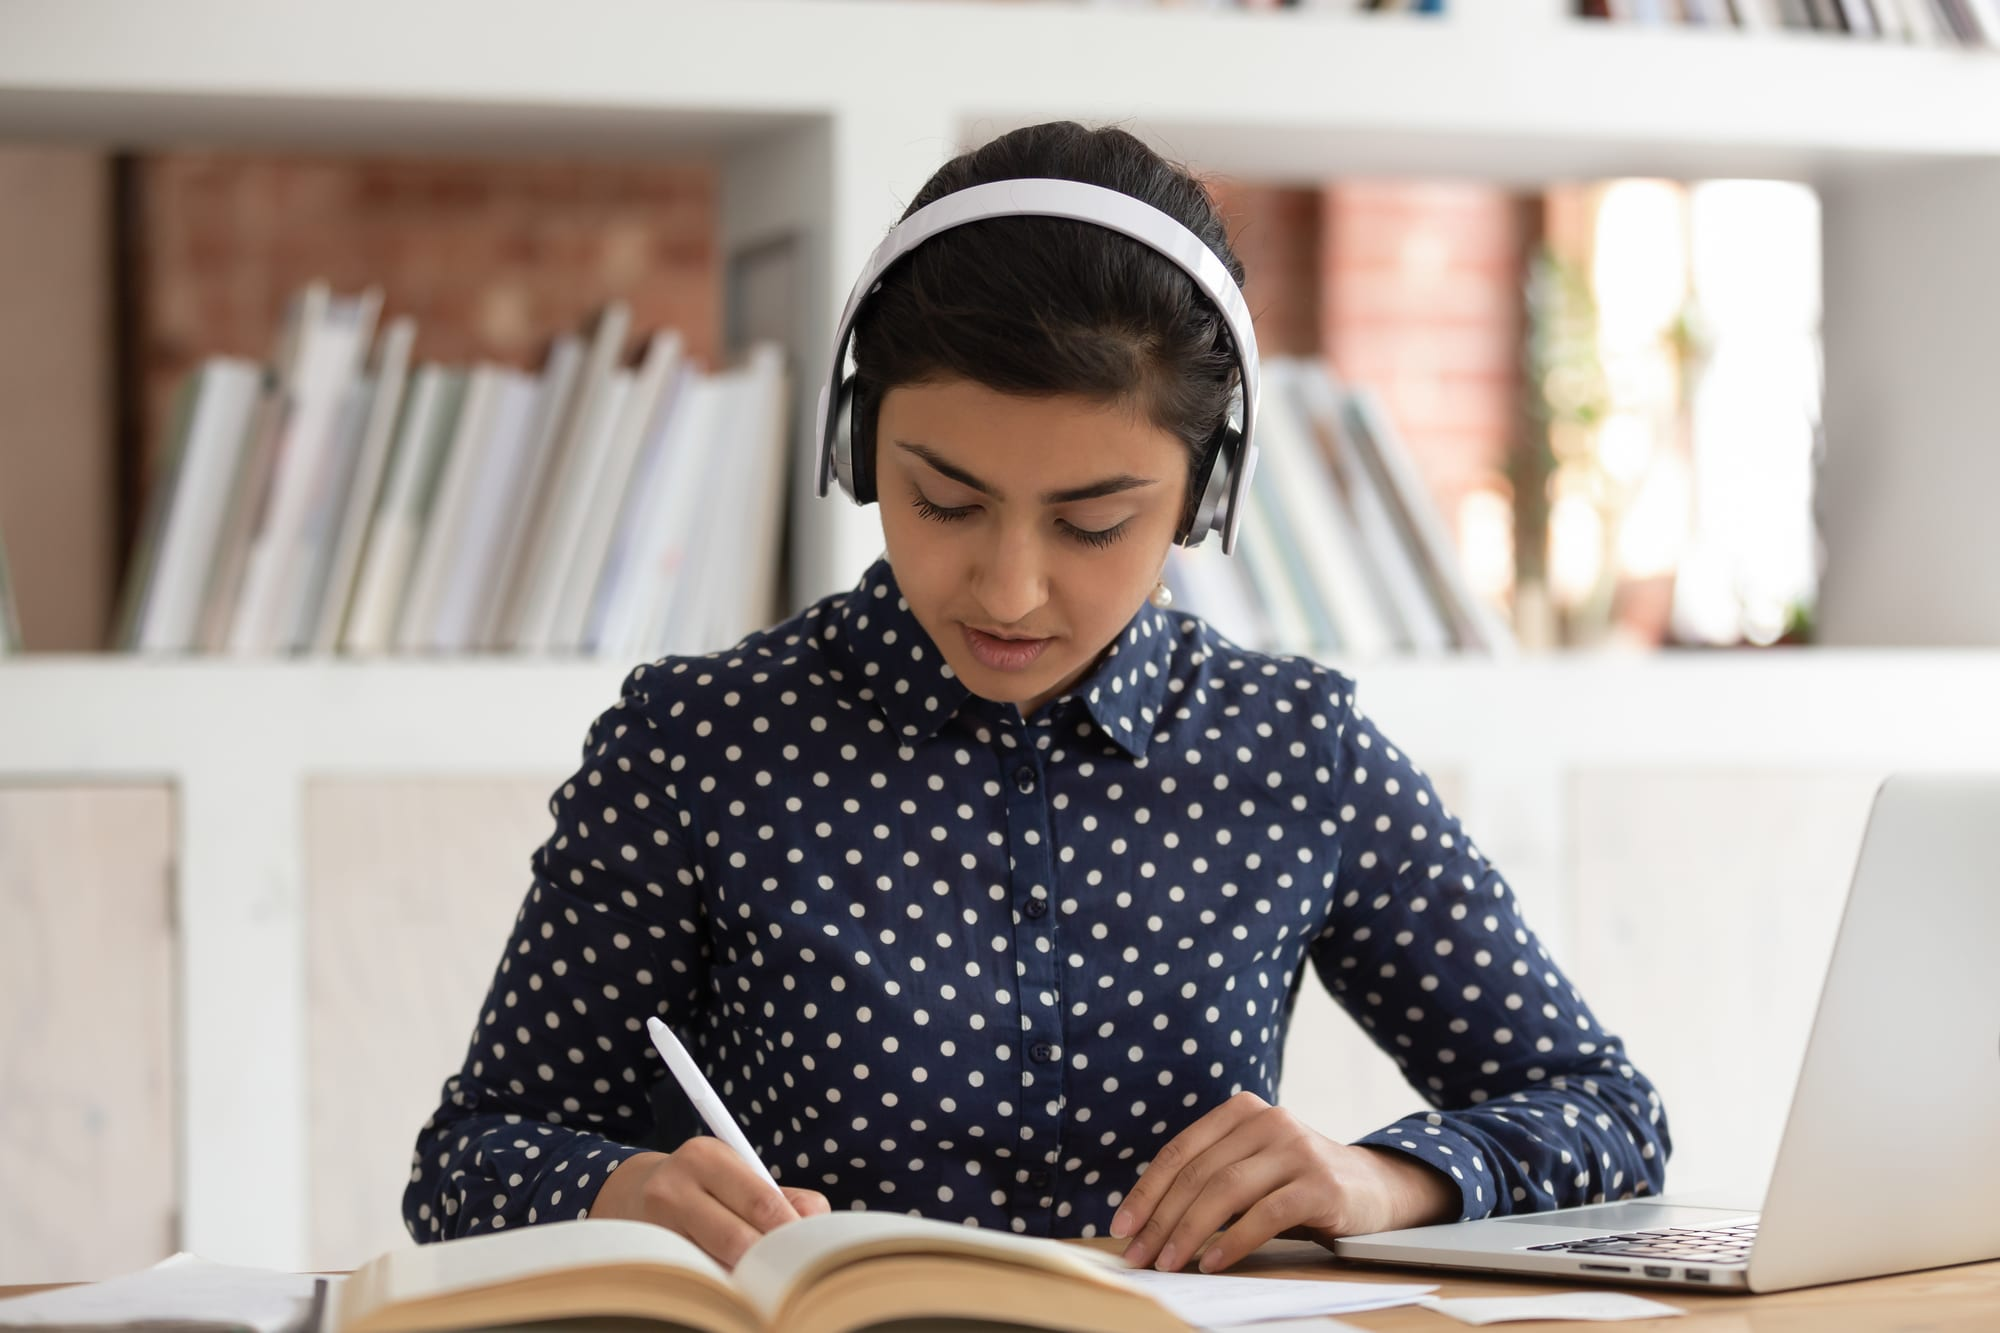 A female student is focusing on her school work and wearing headphones